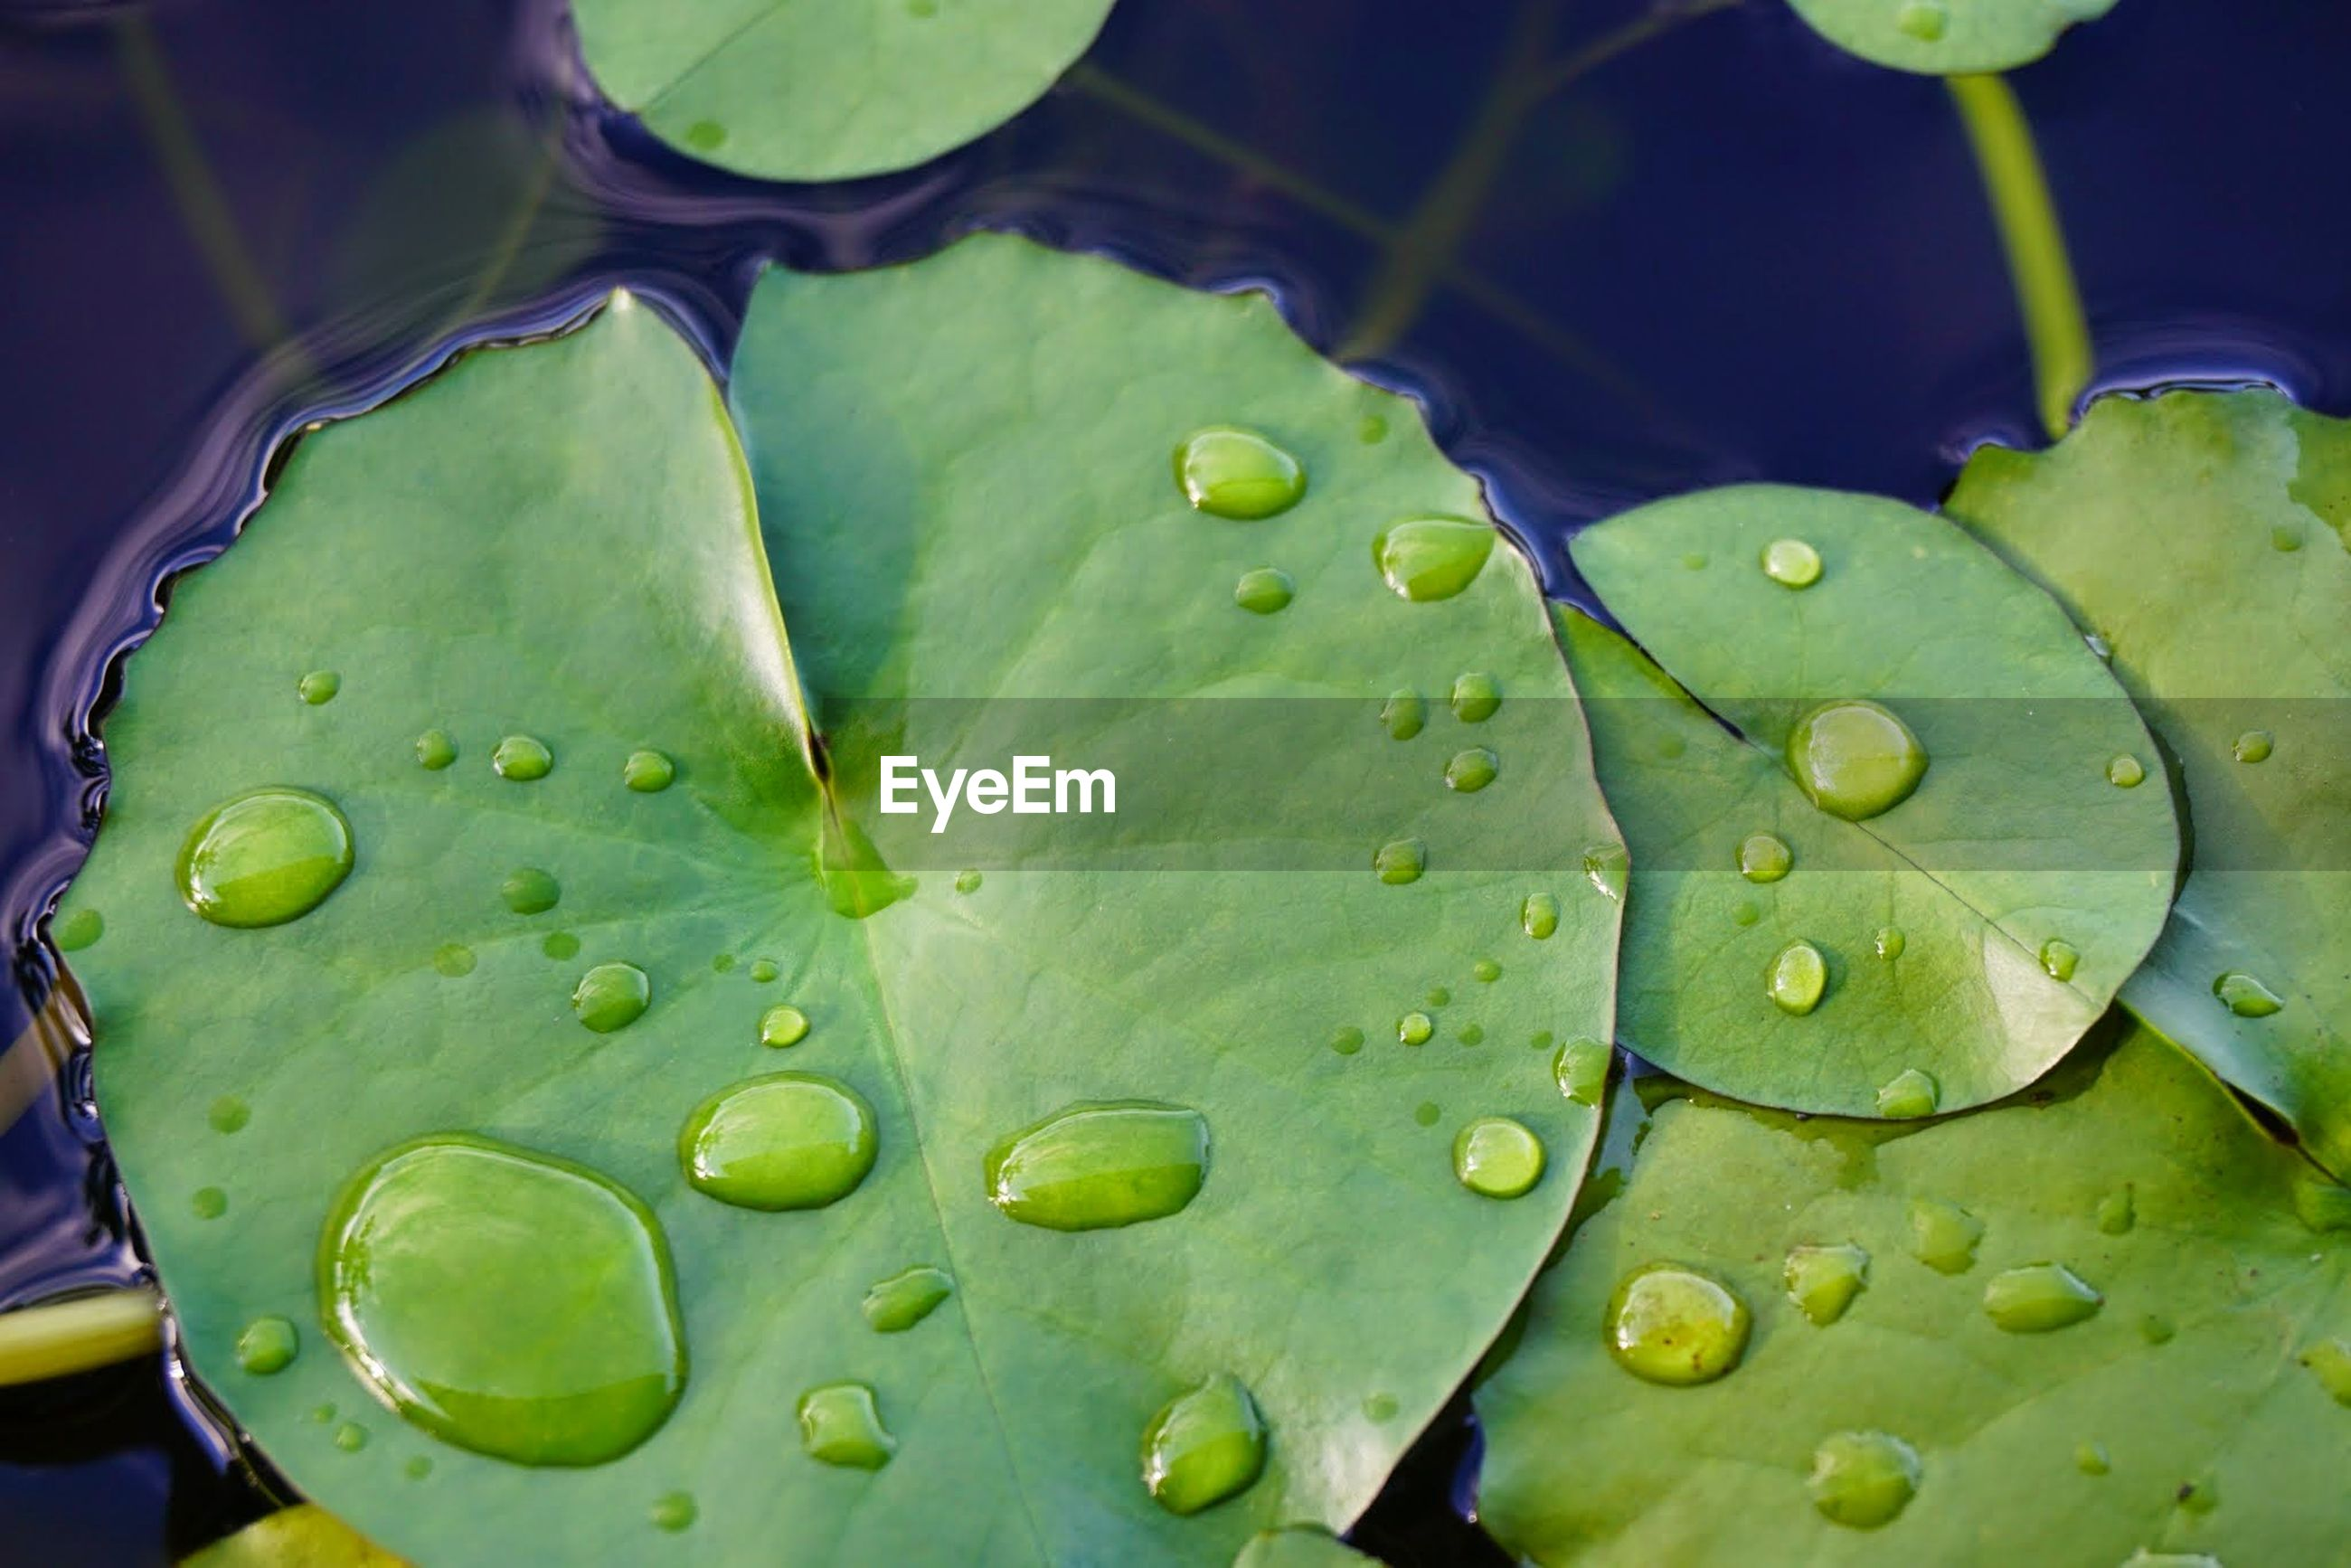 leaf, green color, water, drop, freshness, close-up, leaf vein, growth, leaves, nature, plant, green, fragility, beauty in nature, no people, selective focus, day, natural pattern, focus on foreground, outdoors, detail, tranquility, weather